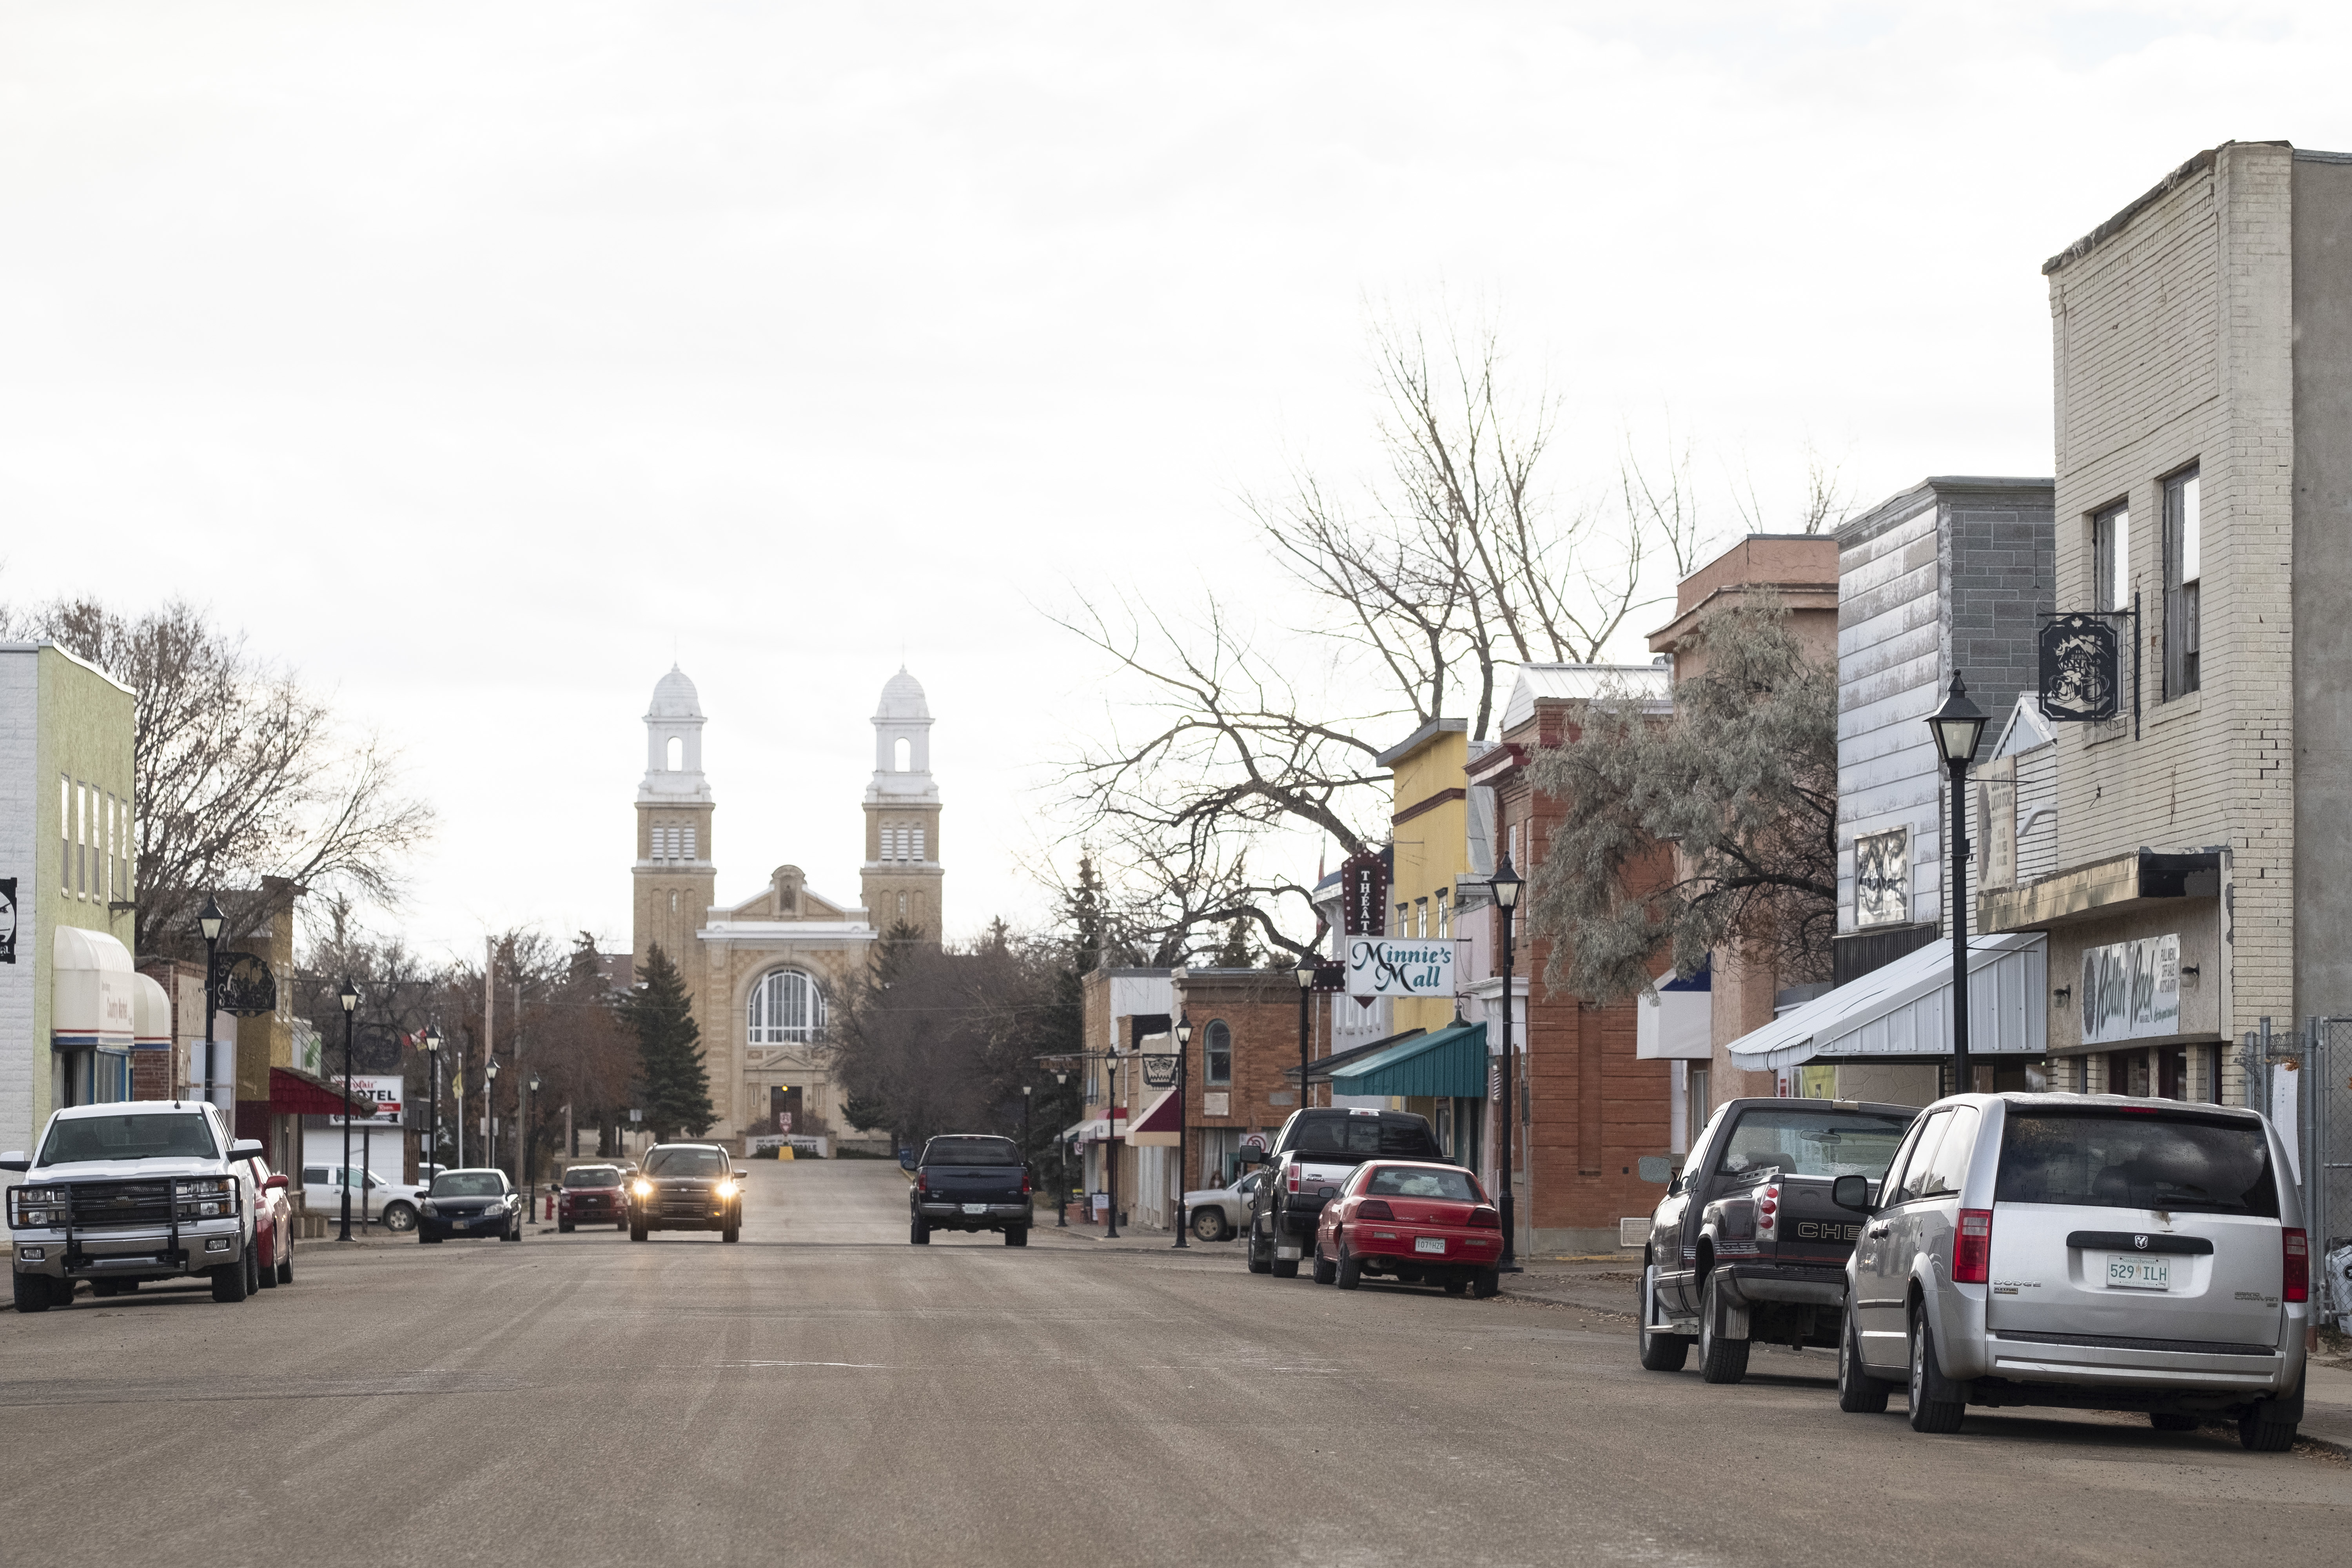 The main street of Gravelbourg, Sask., which is about 150 kilometres southwest of Regina. Photo: David Stobbe